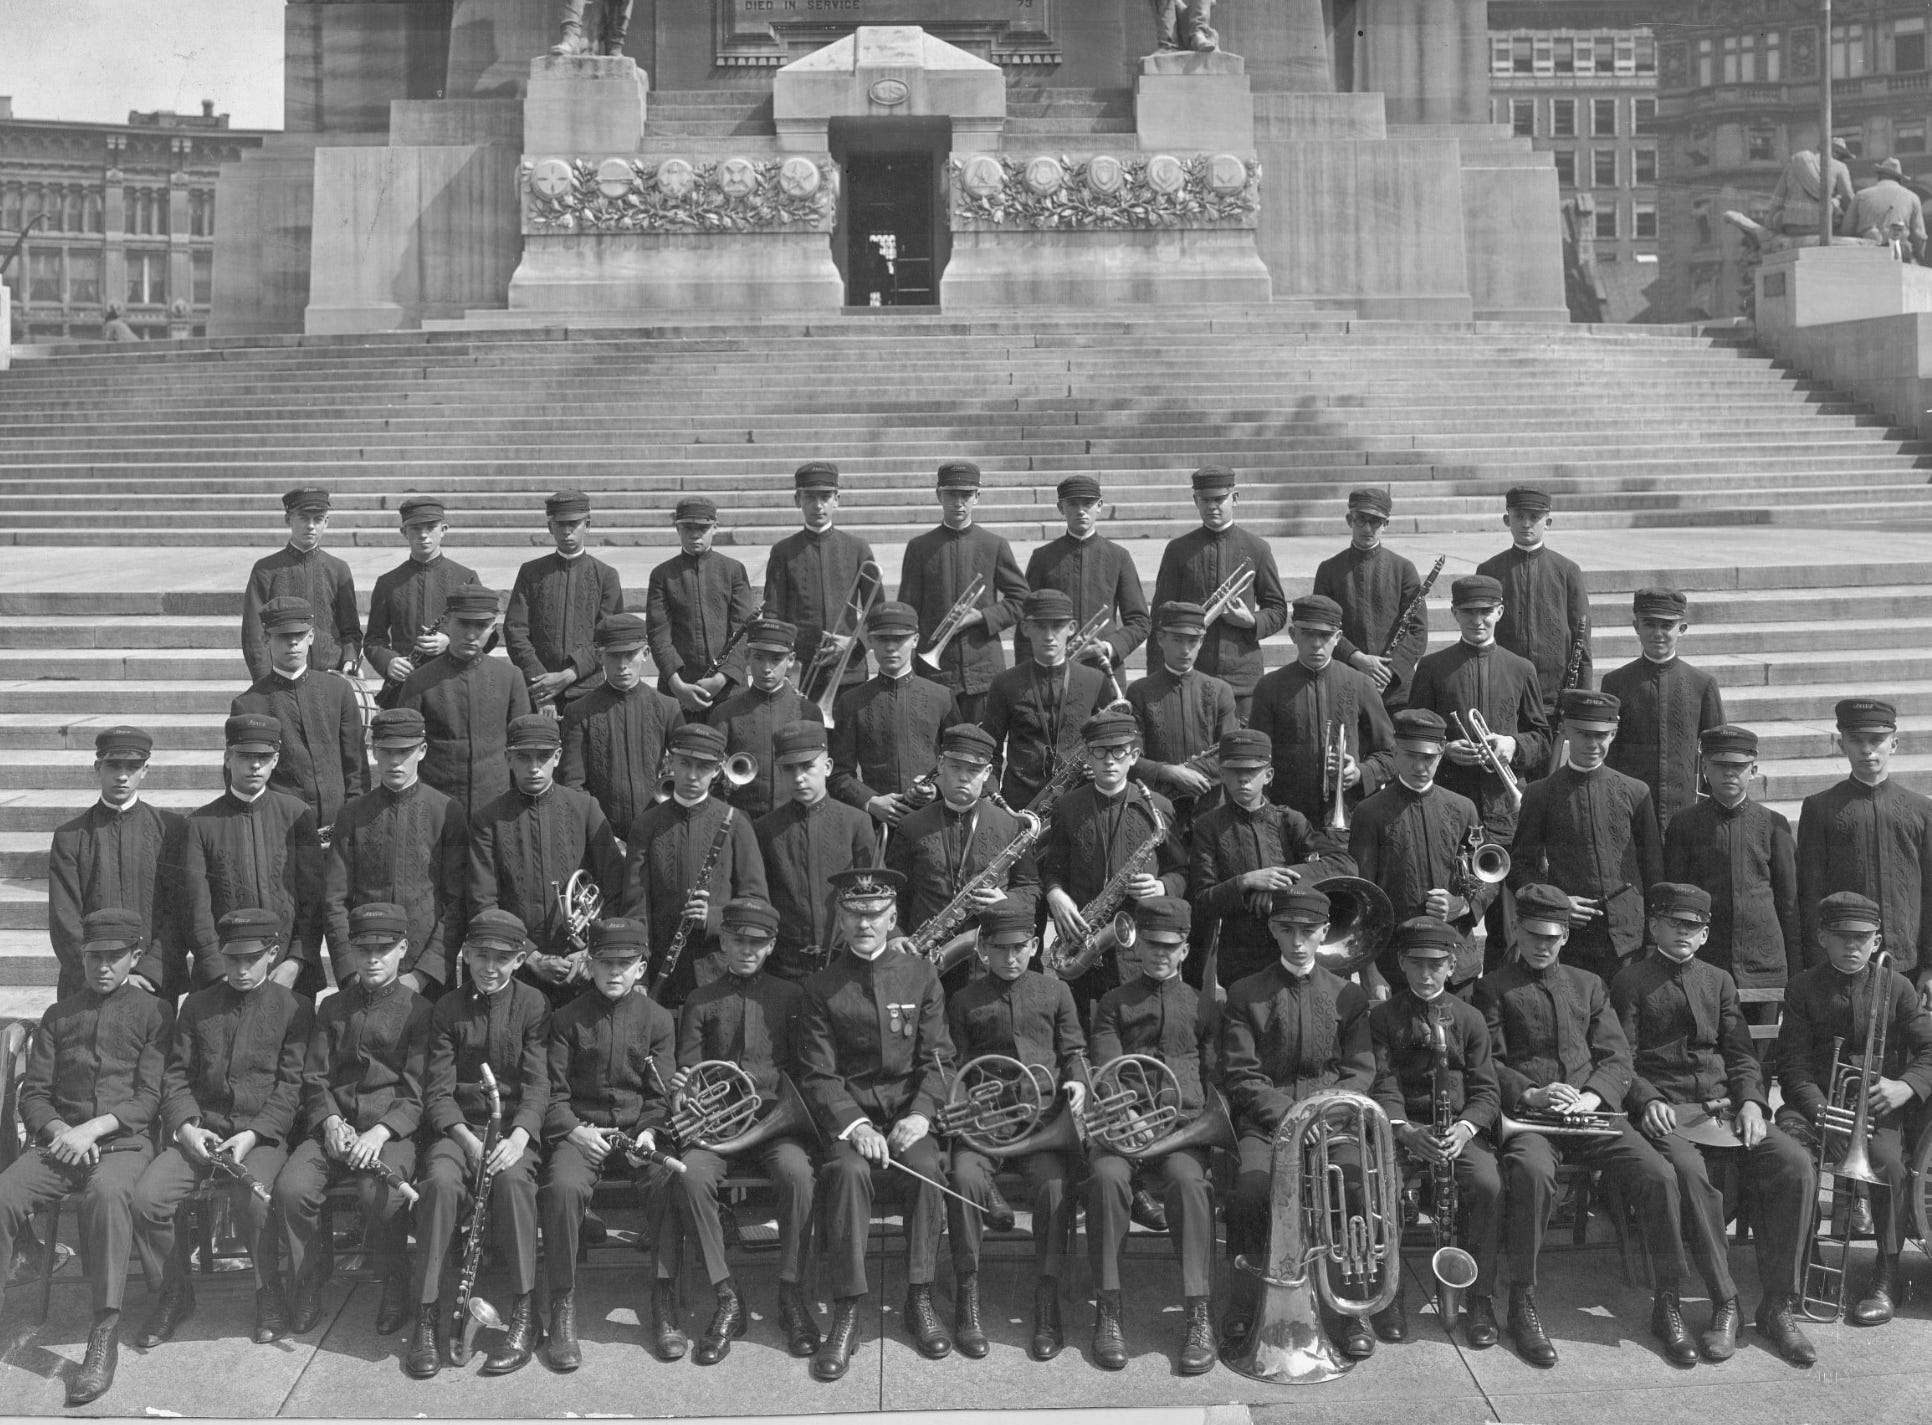 The Indianapolis News newsboys band in 1922 on the steps of the Soldiers and Sailors Monument.